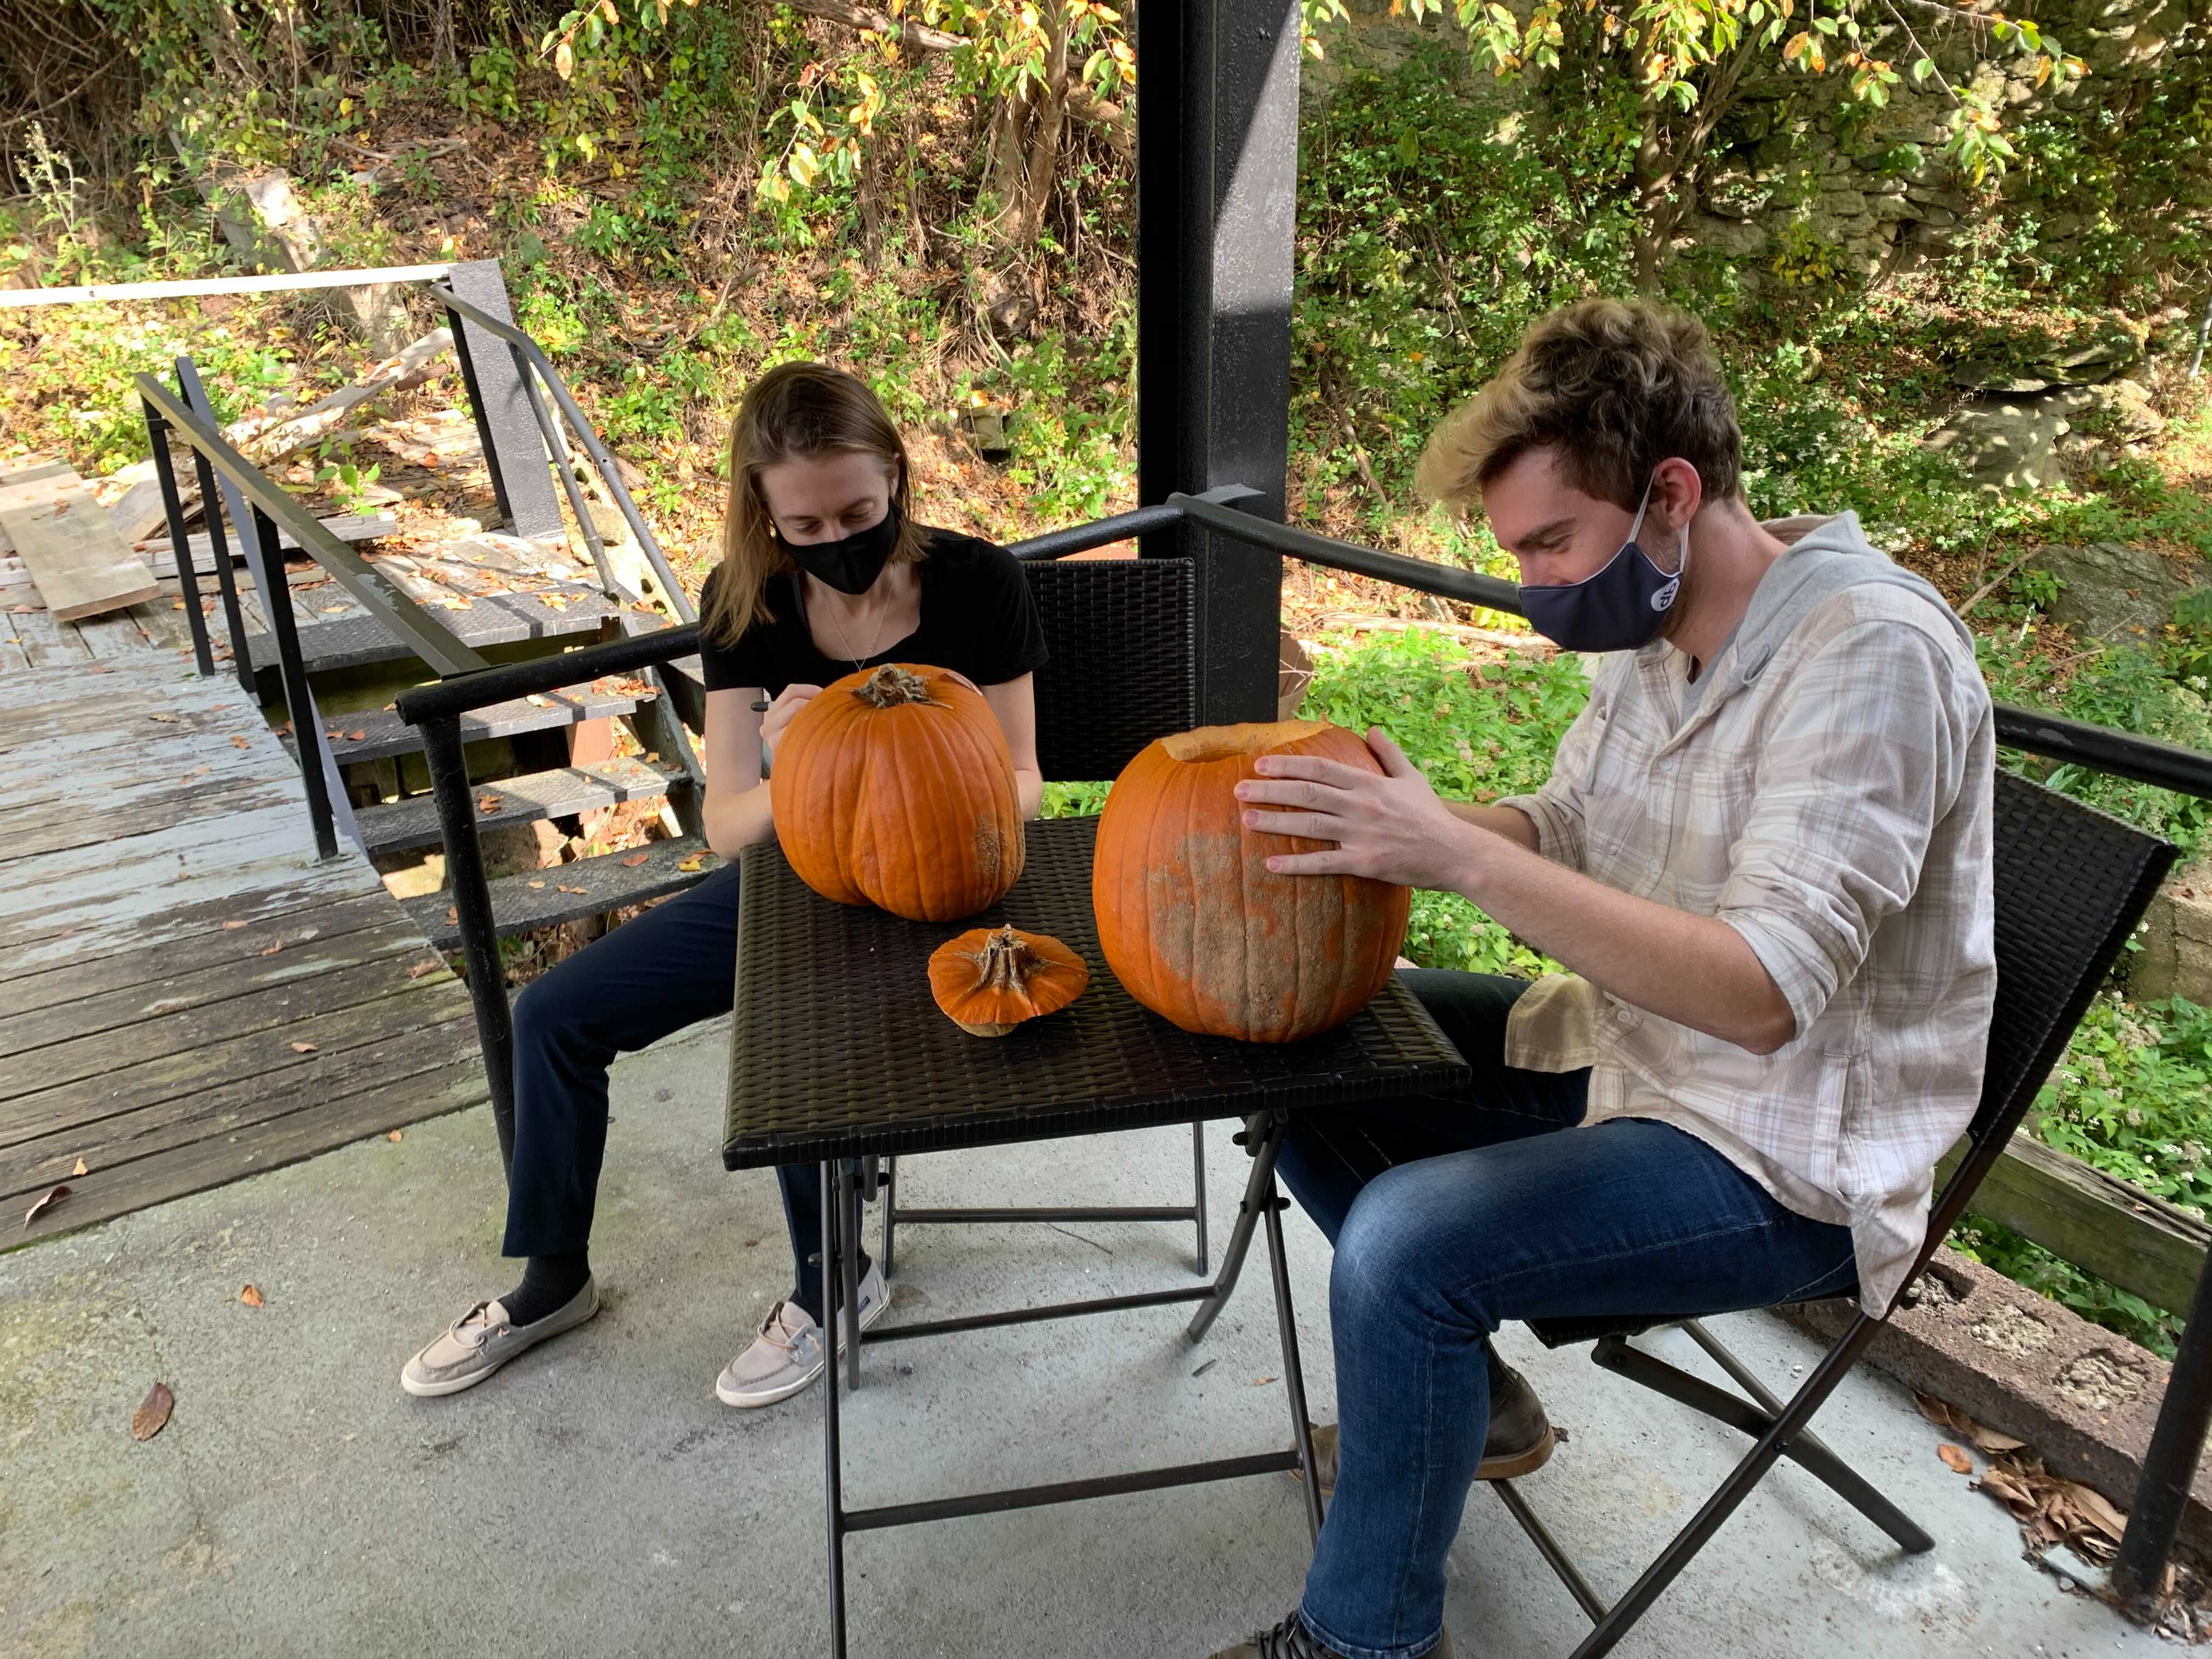 Two members of the visualization team sitting at a table to carve pumpkins